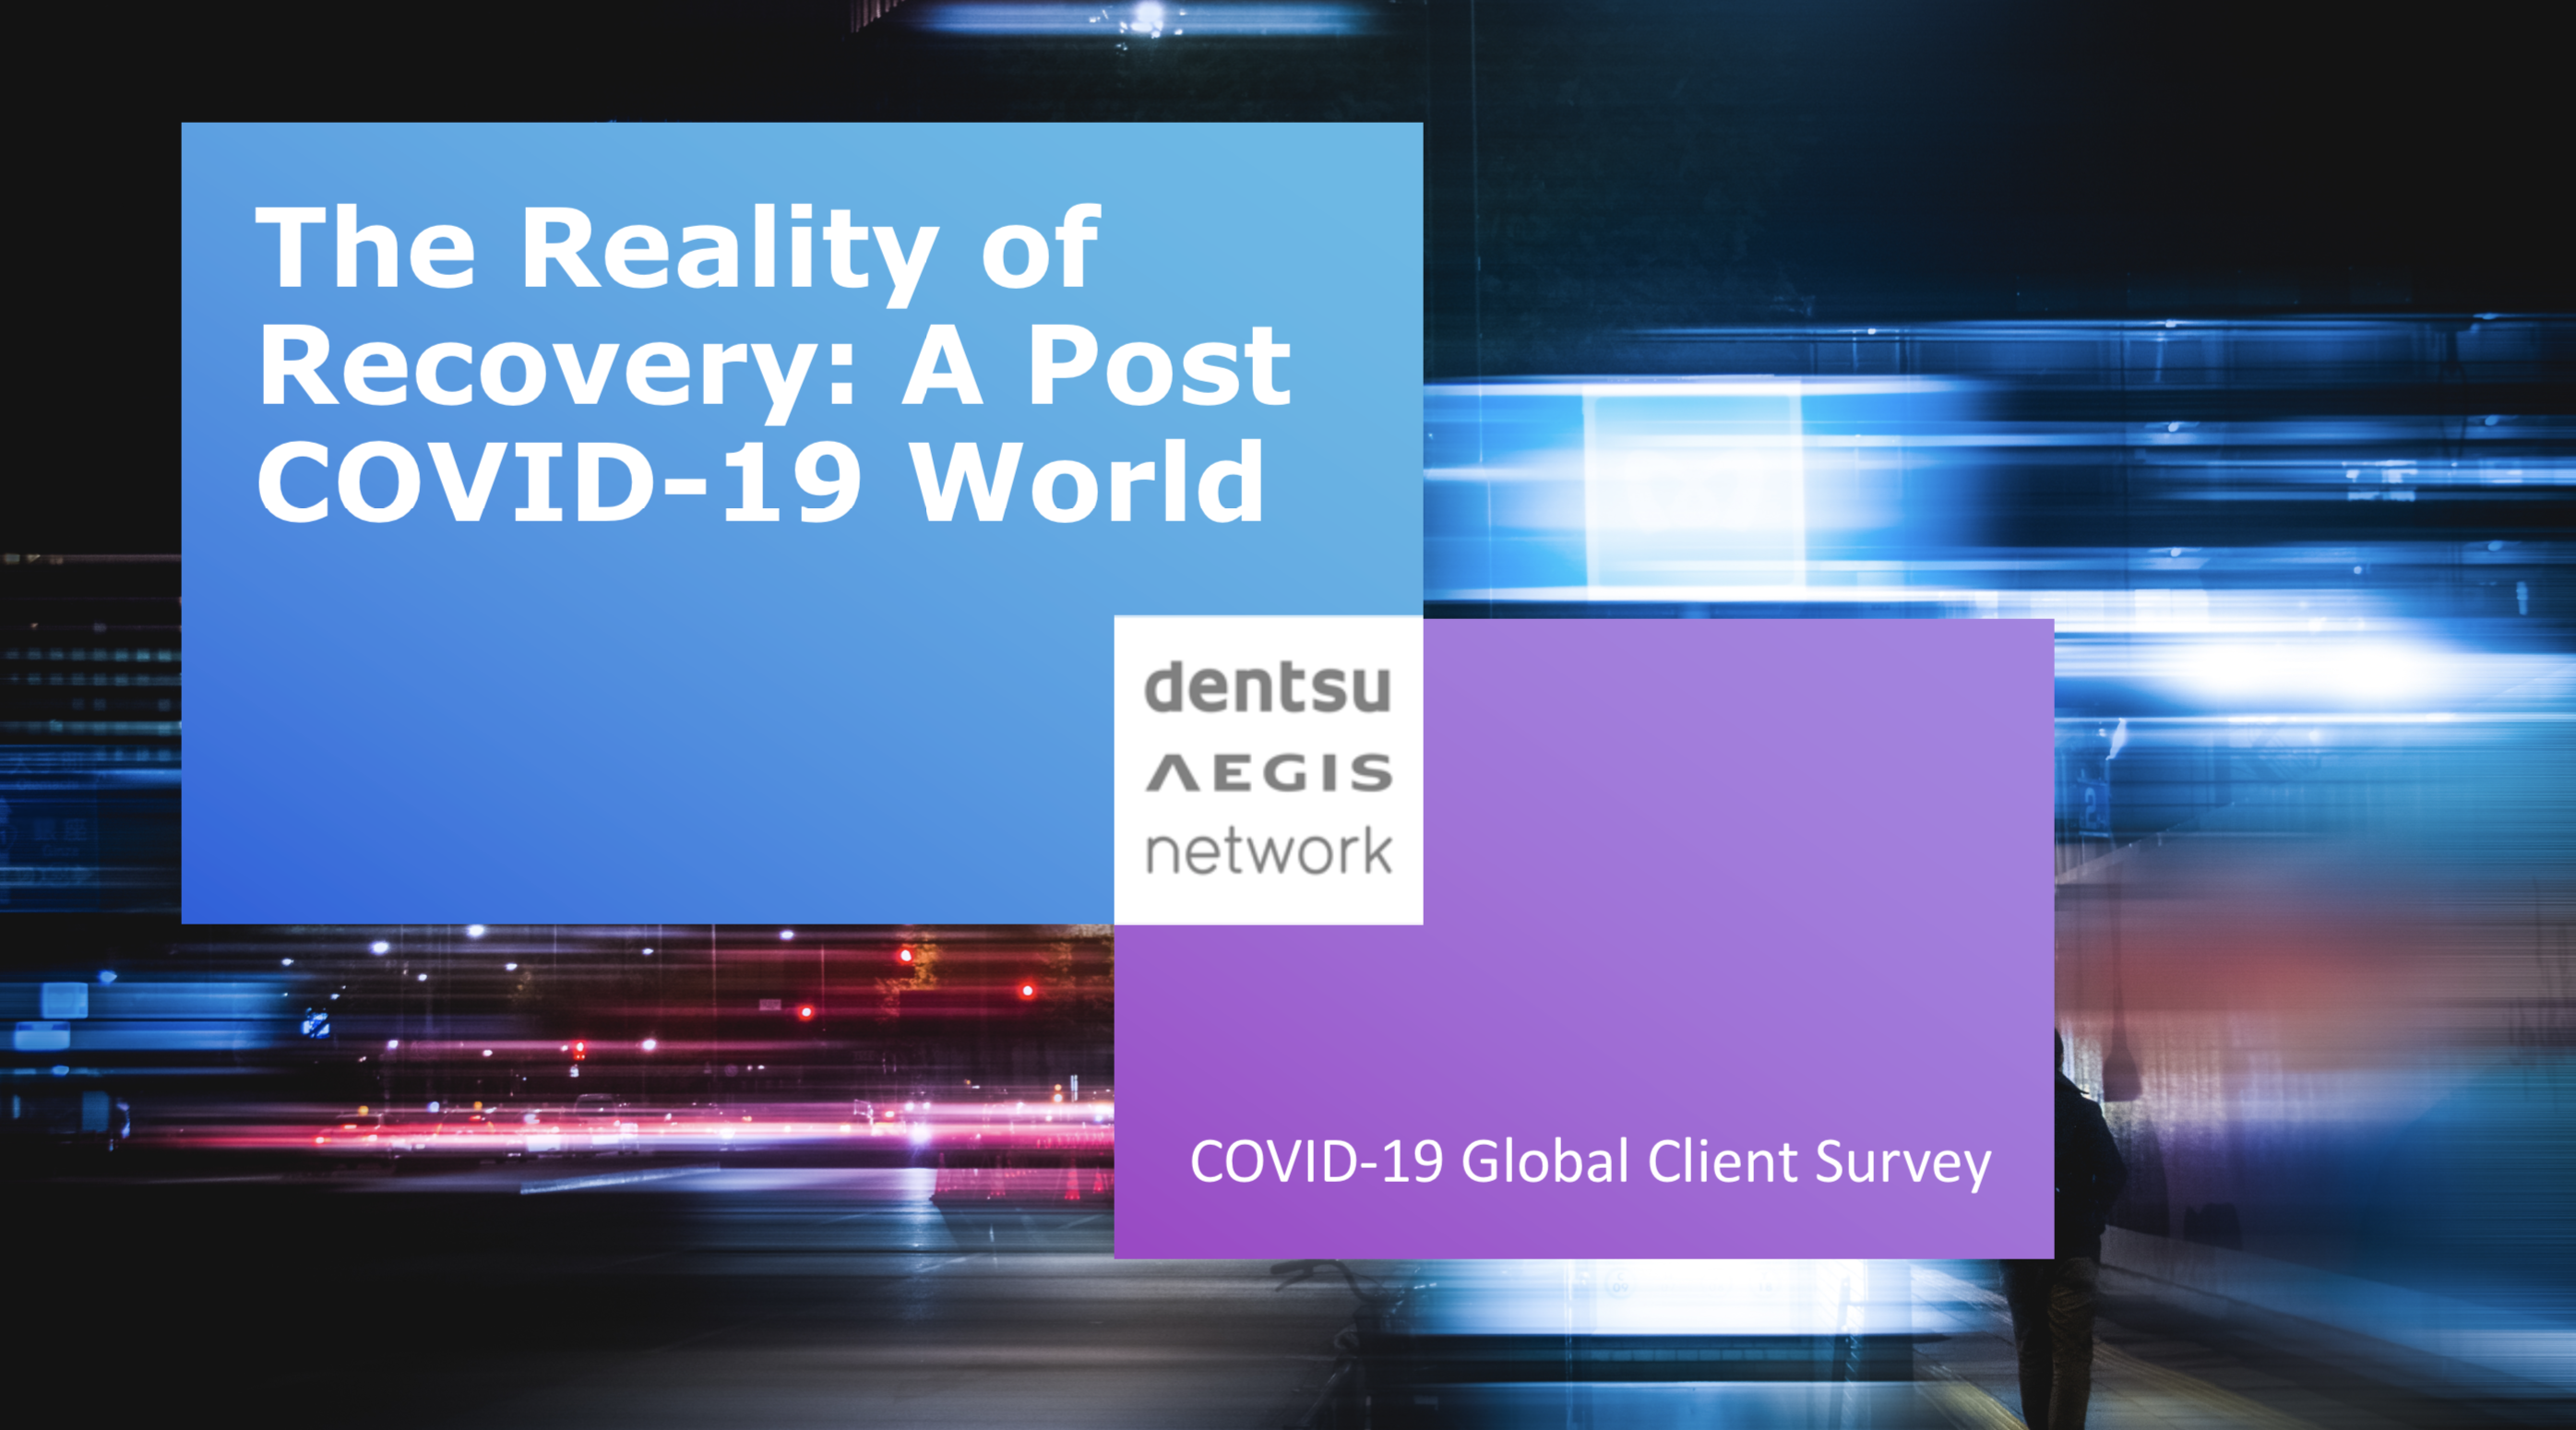 COVID-19 Global Client Survey iProspect